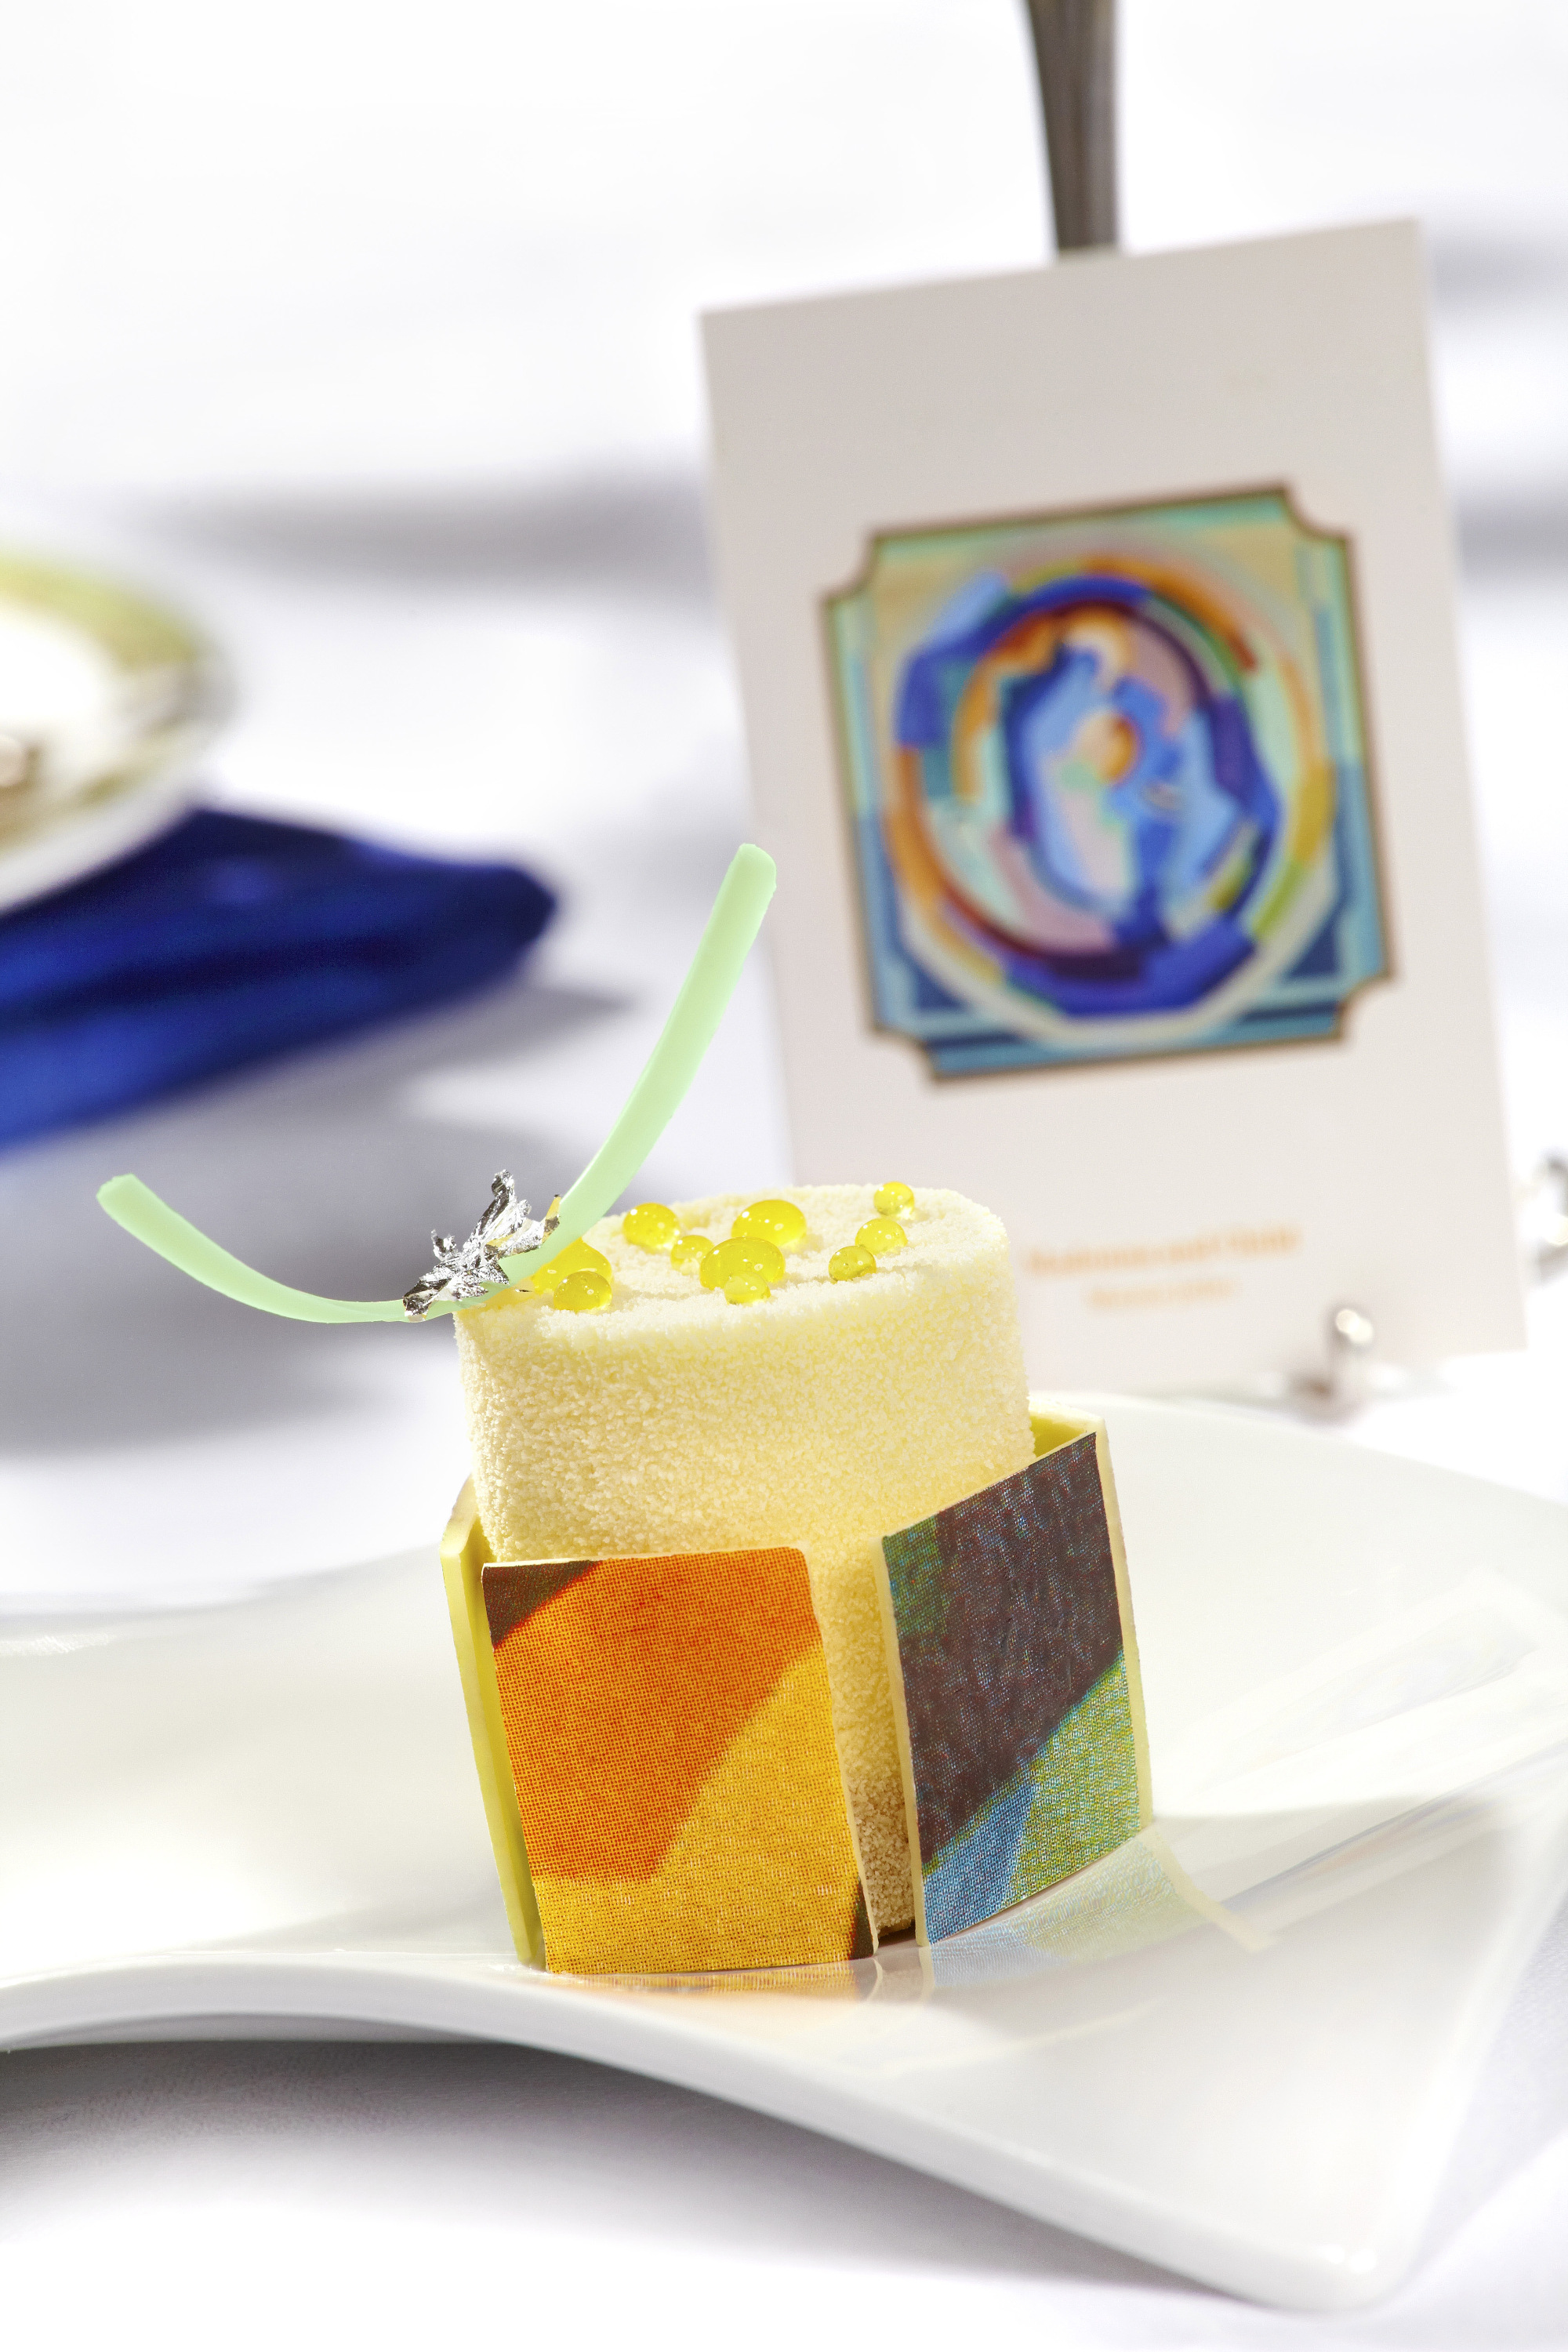 Passion fruit and Orange Cheesecake inspired by Madonna and Child by Mainie Jellet.